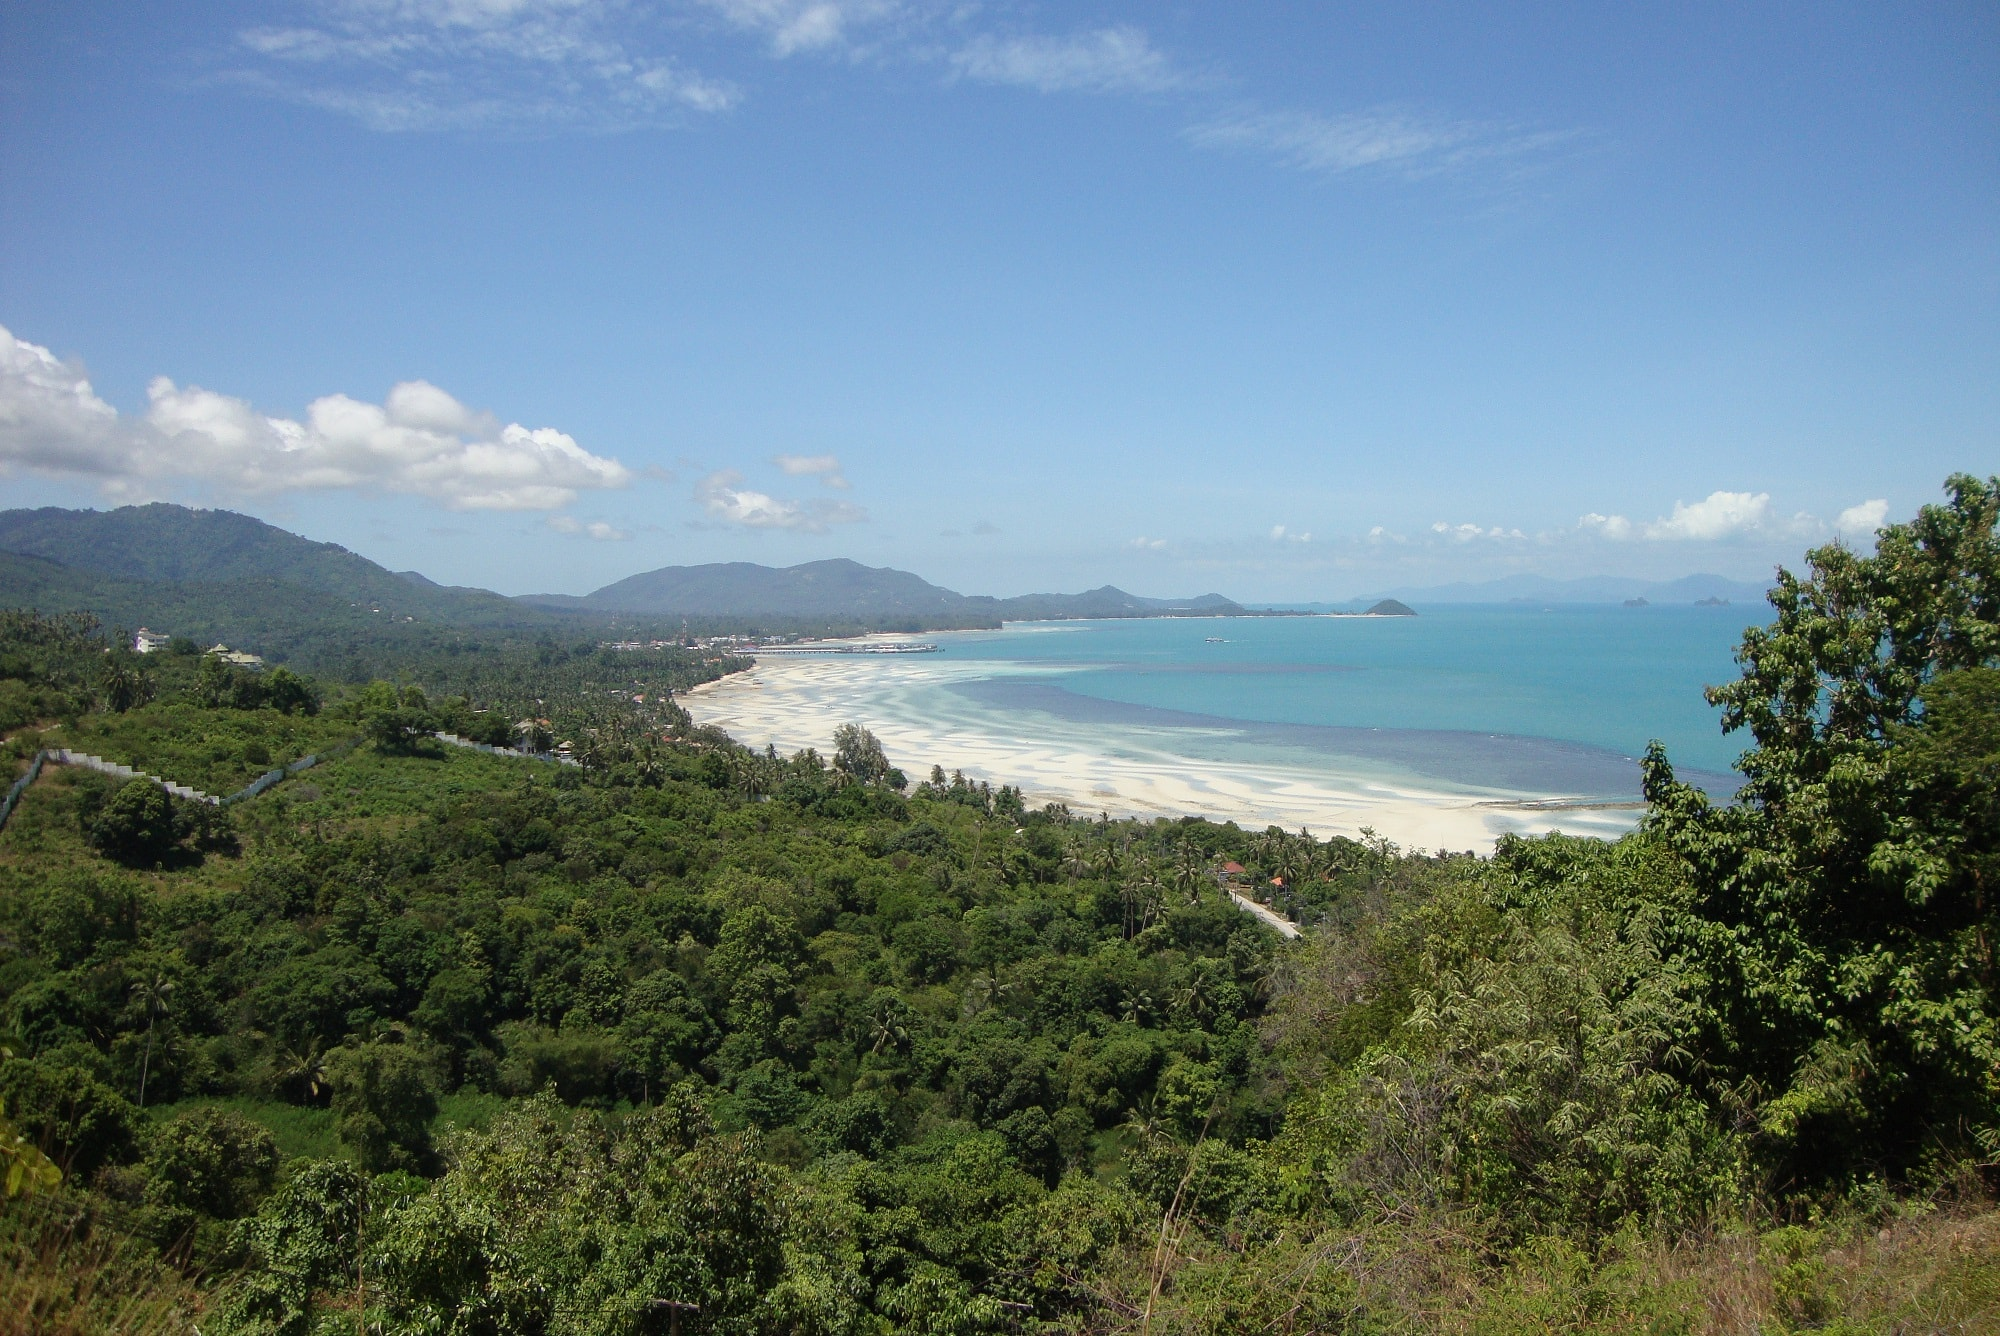 Koh Samui west coast